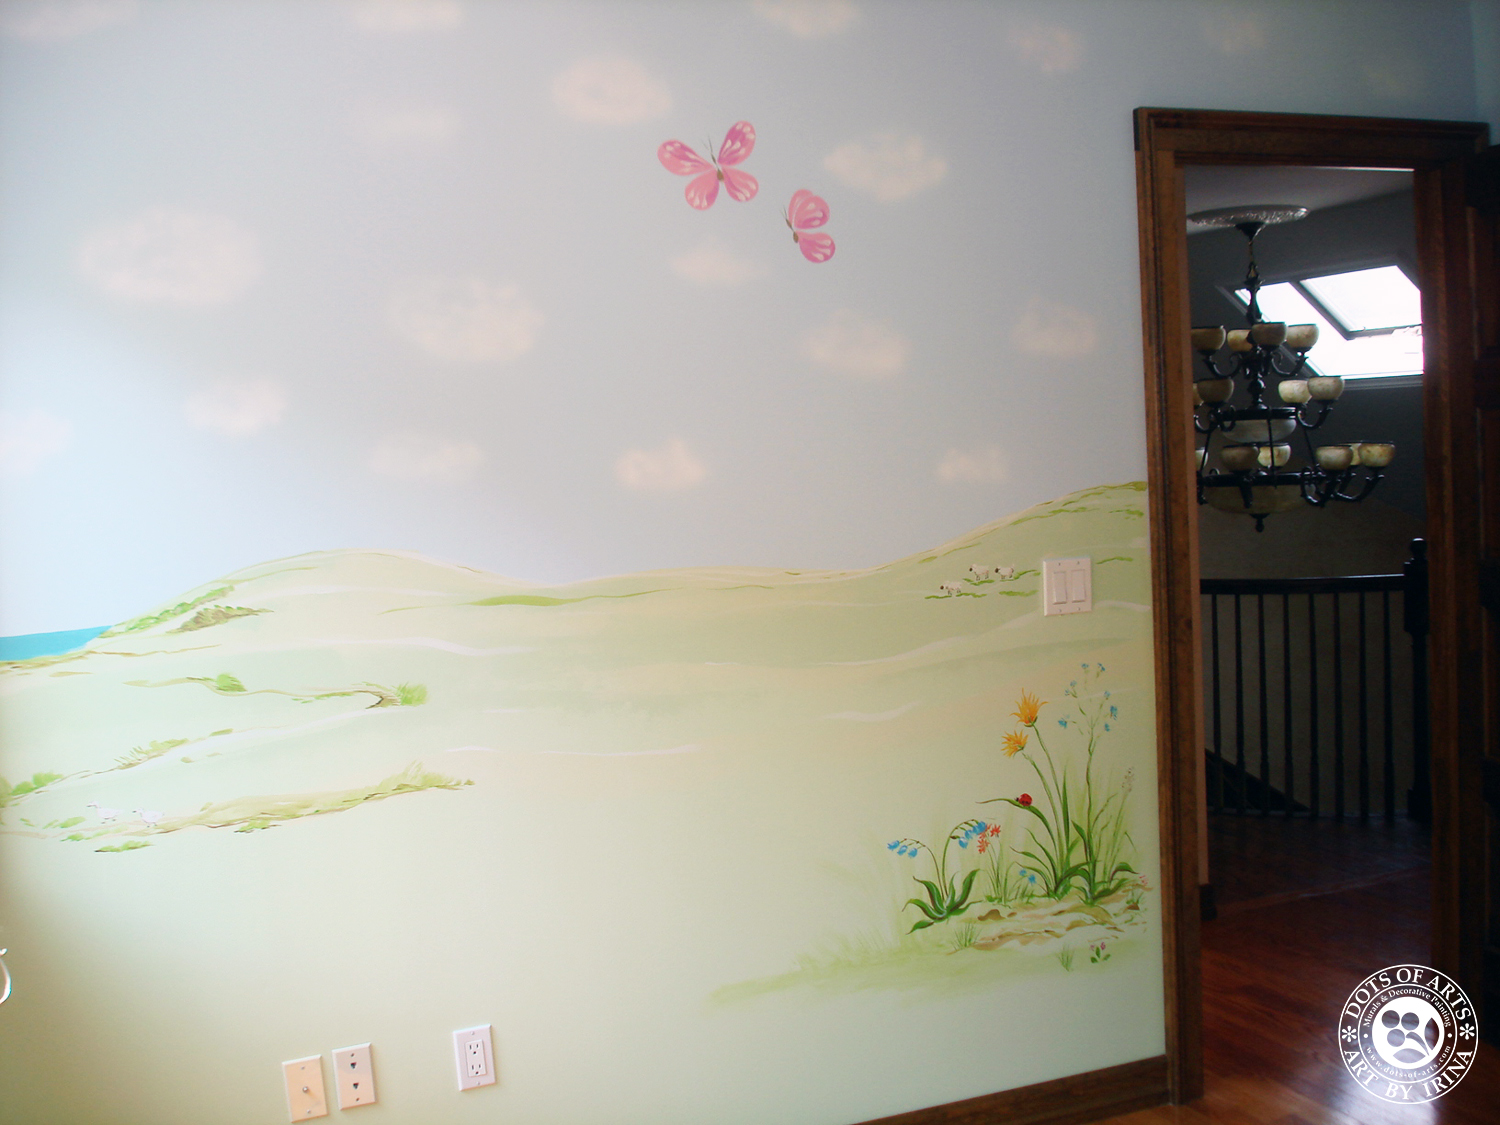 mural-custom-baby-room-farm-theme-clouds-wild-flowers-dots-of-arts-doors.jpg